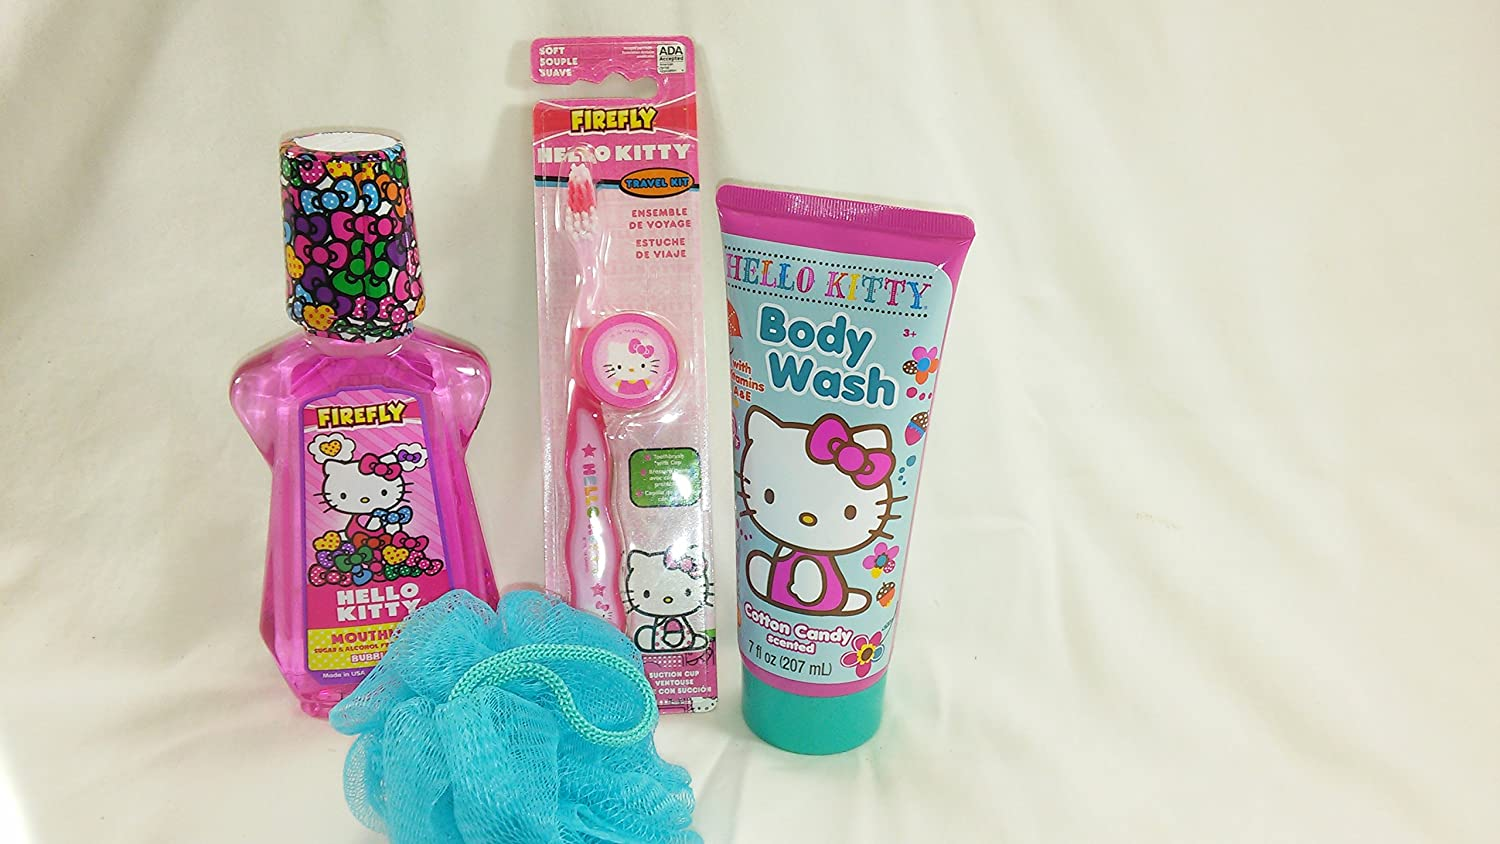 Amazon.com: Hello Kitty 4pc Bundle Gift Set Mouth Wash, Toothbrush, Body Wash & Puff: Health & Personal Care